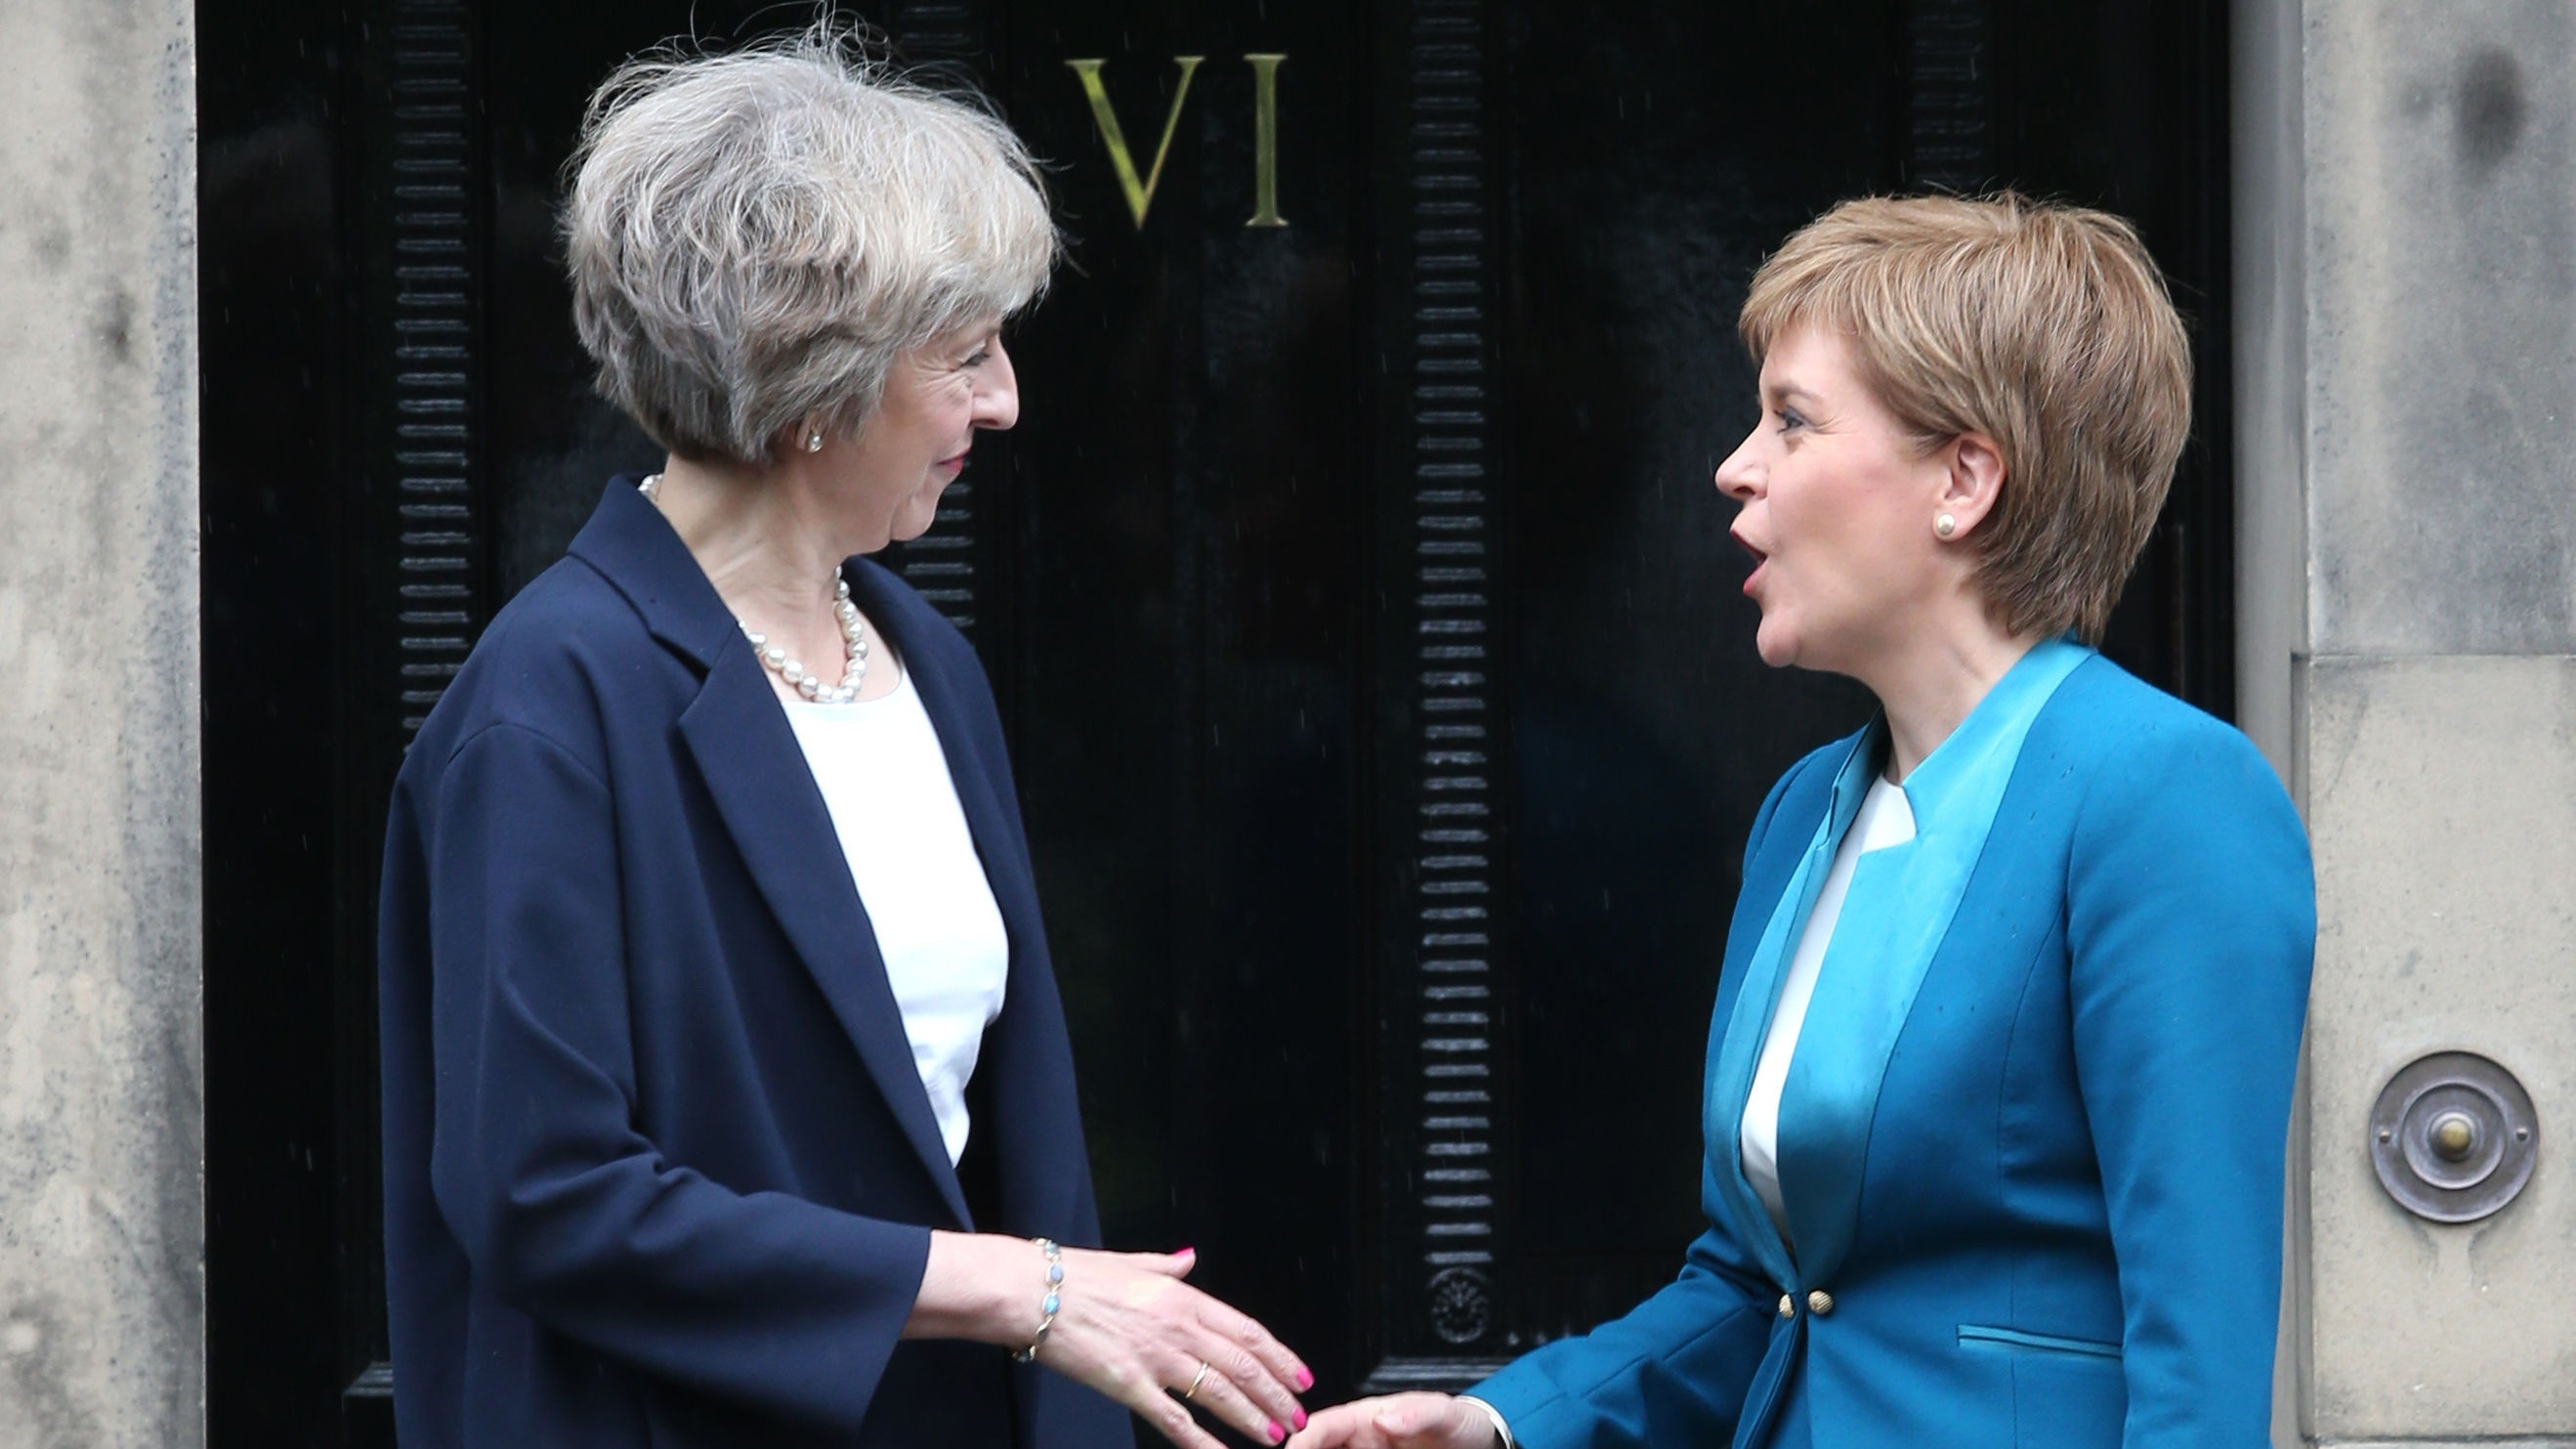 Nicola Sturgeon said Theresa May should agree to a transition period inside the single market and customs union (PA)